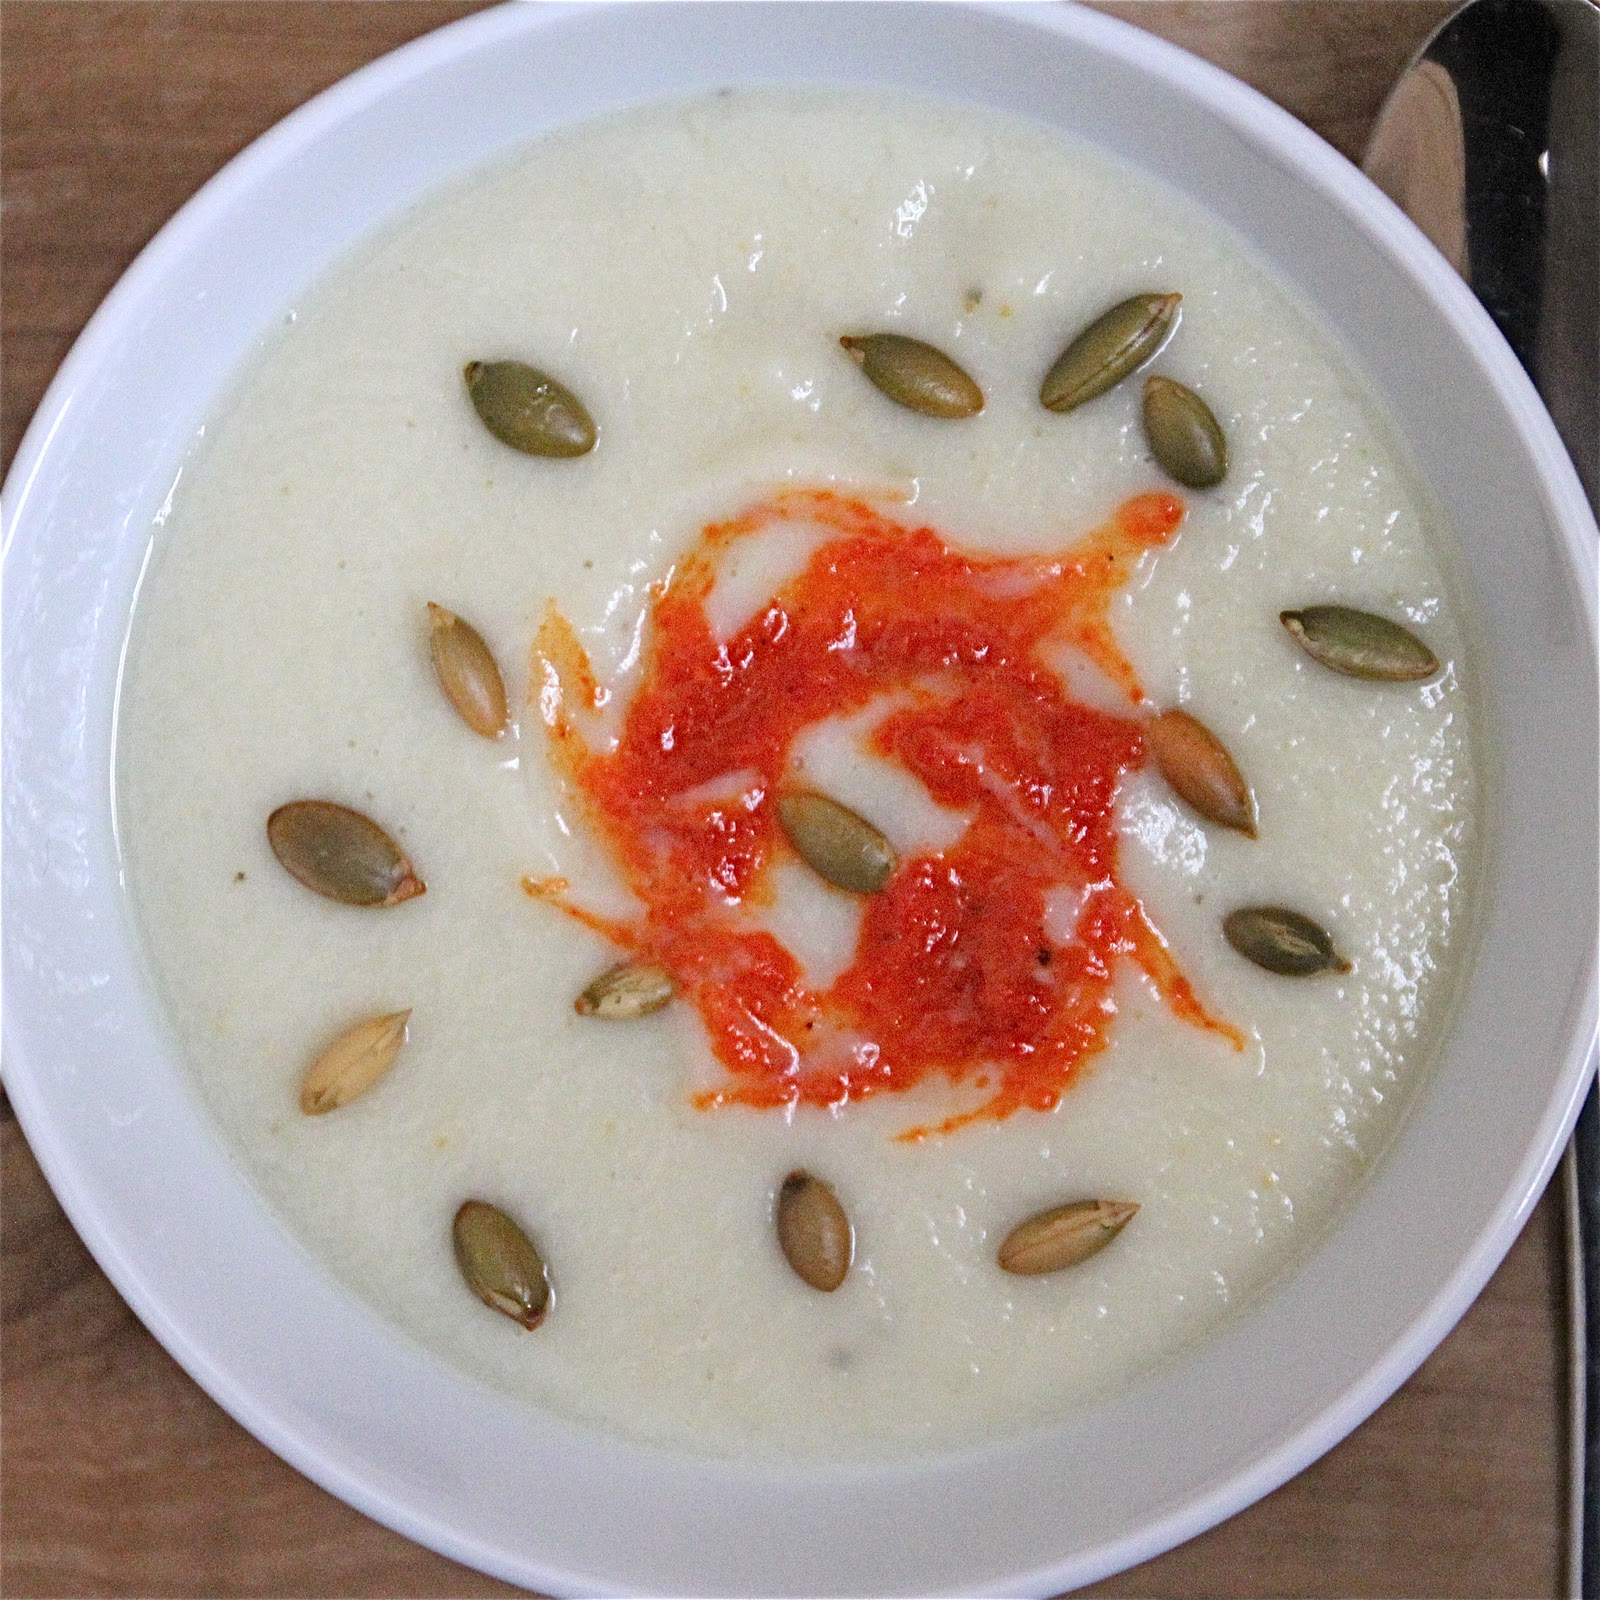 Creamless Cream of Cauliflower Soup with a splash of Roasted Red Pepper Sauce